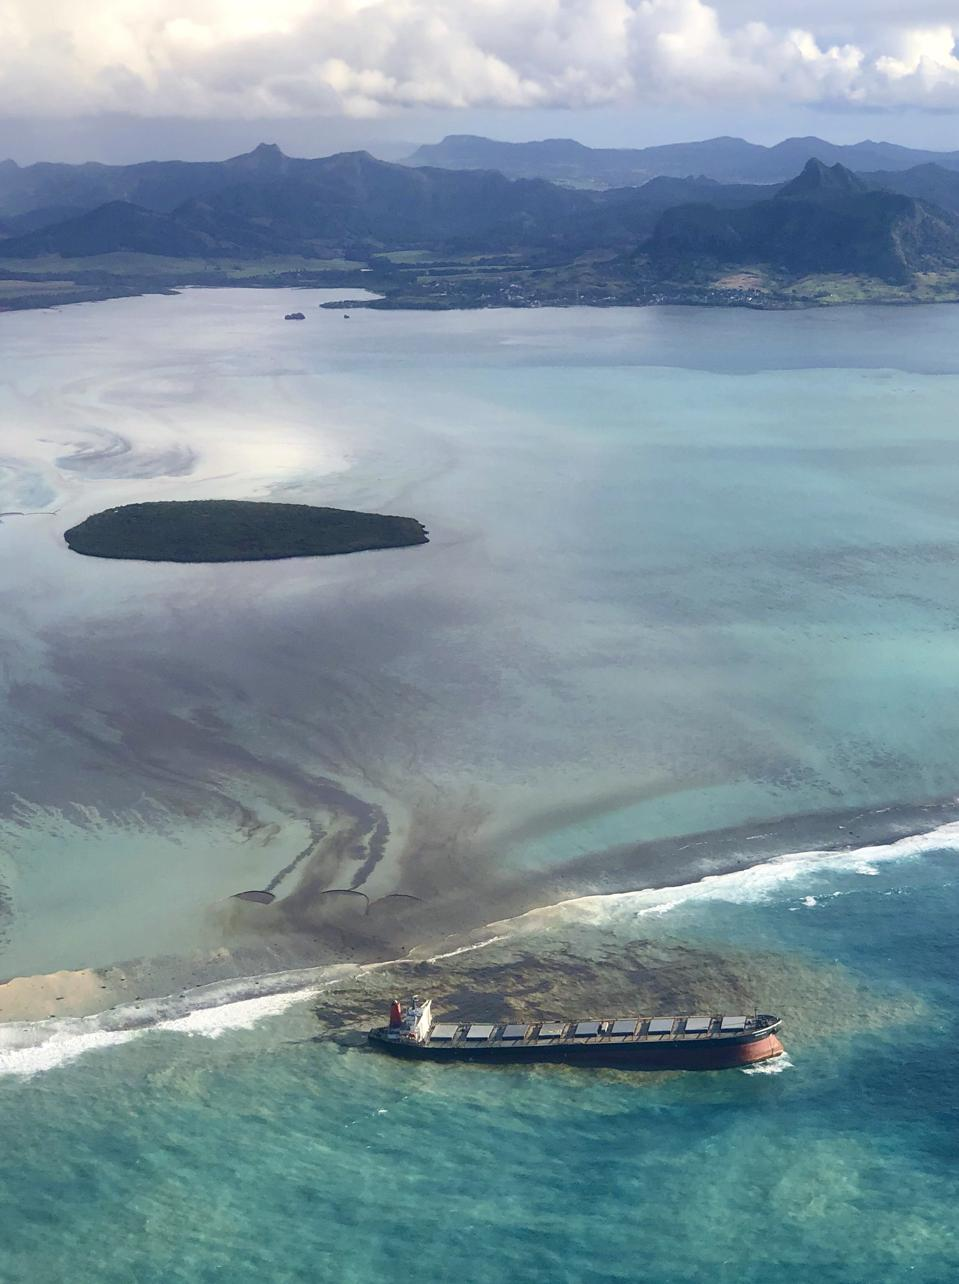 The giant Japanese bulk carrier, the Wakashio, spilled an undisclosed amount of oil along the coast of Mauritius in August, having run aground in July in as yet unexplained circumstances.